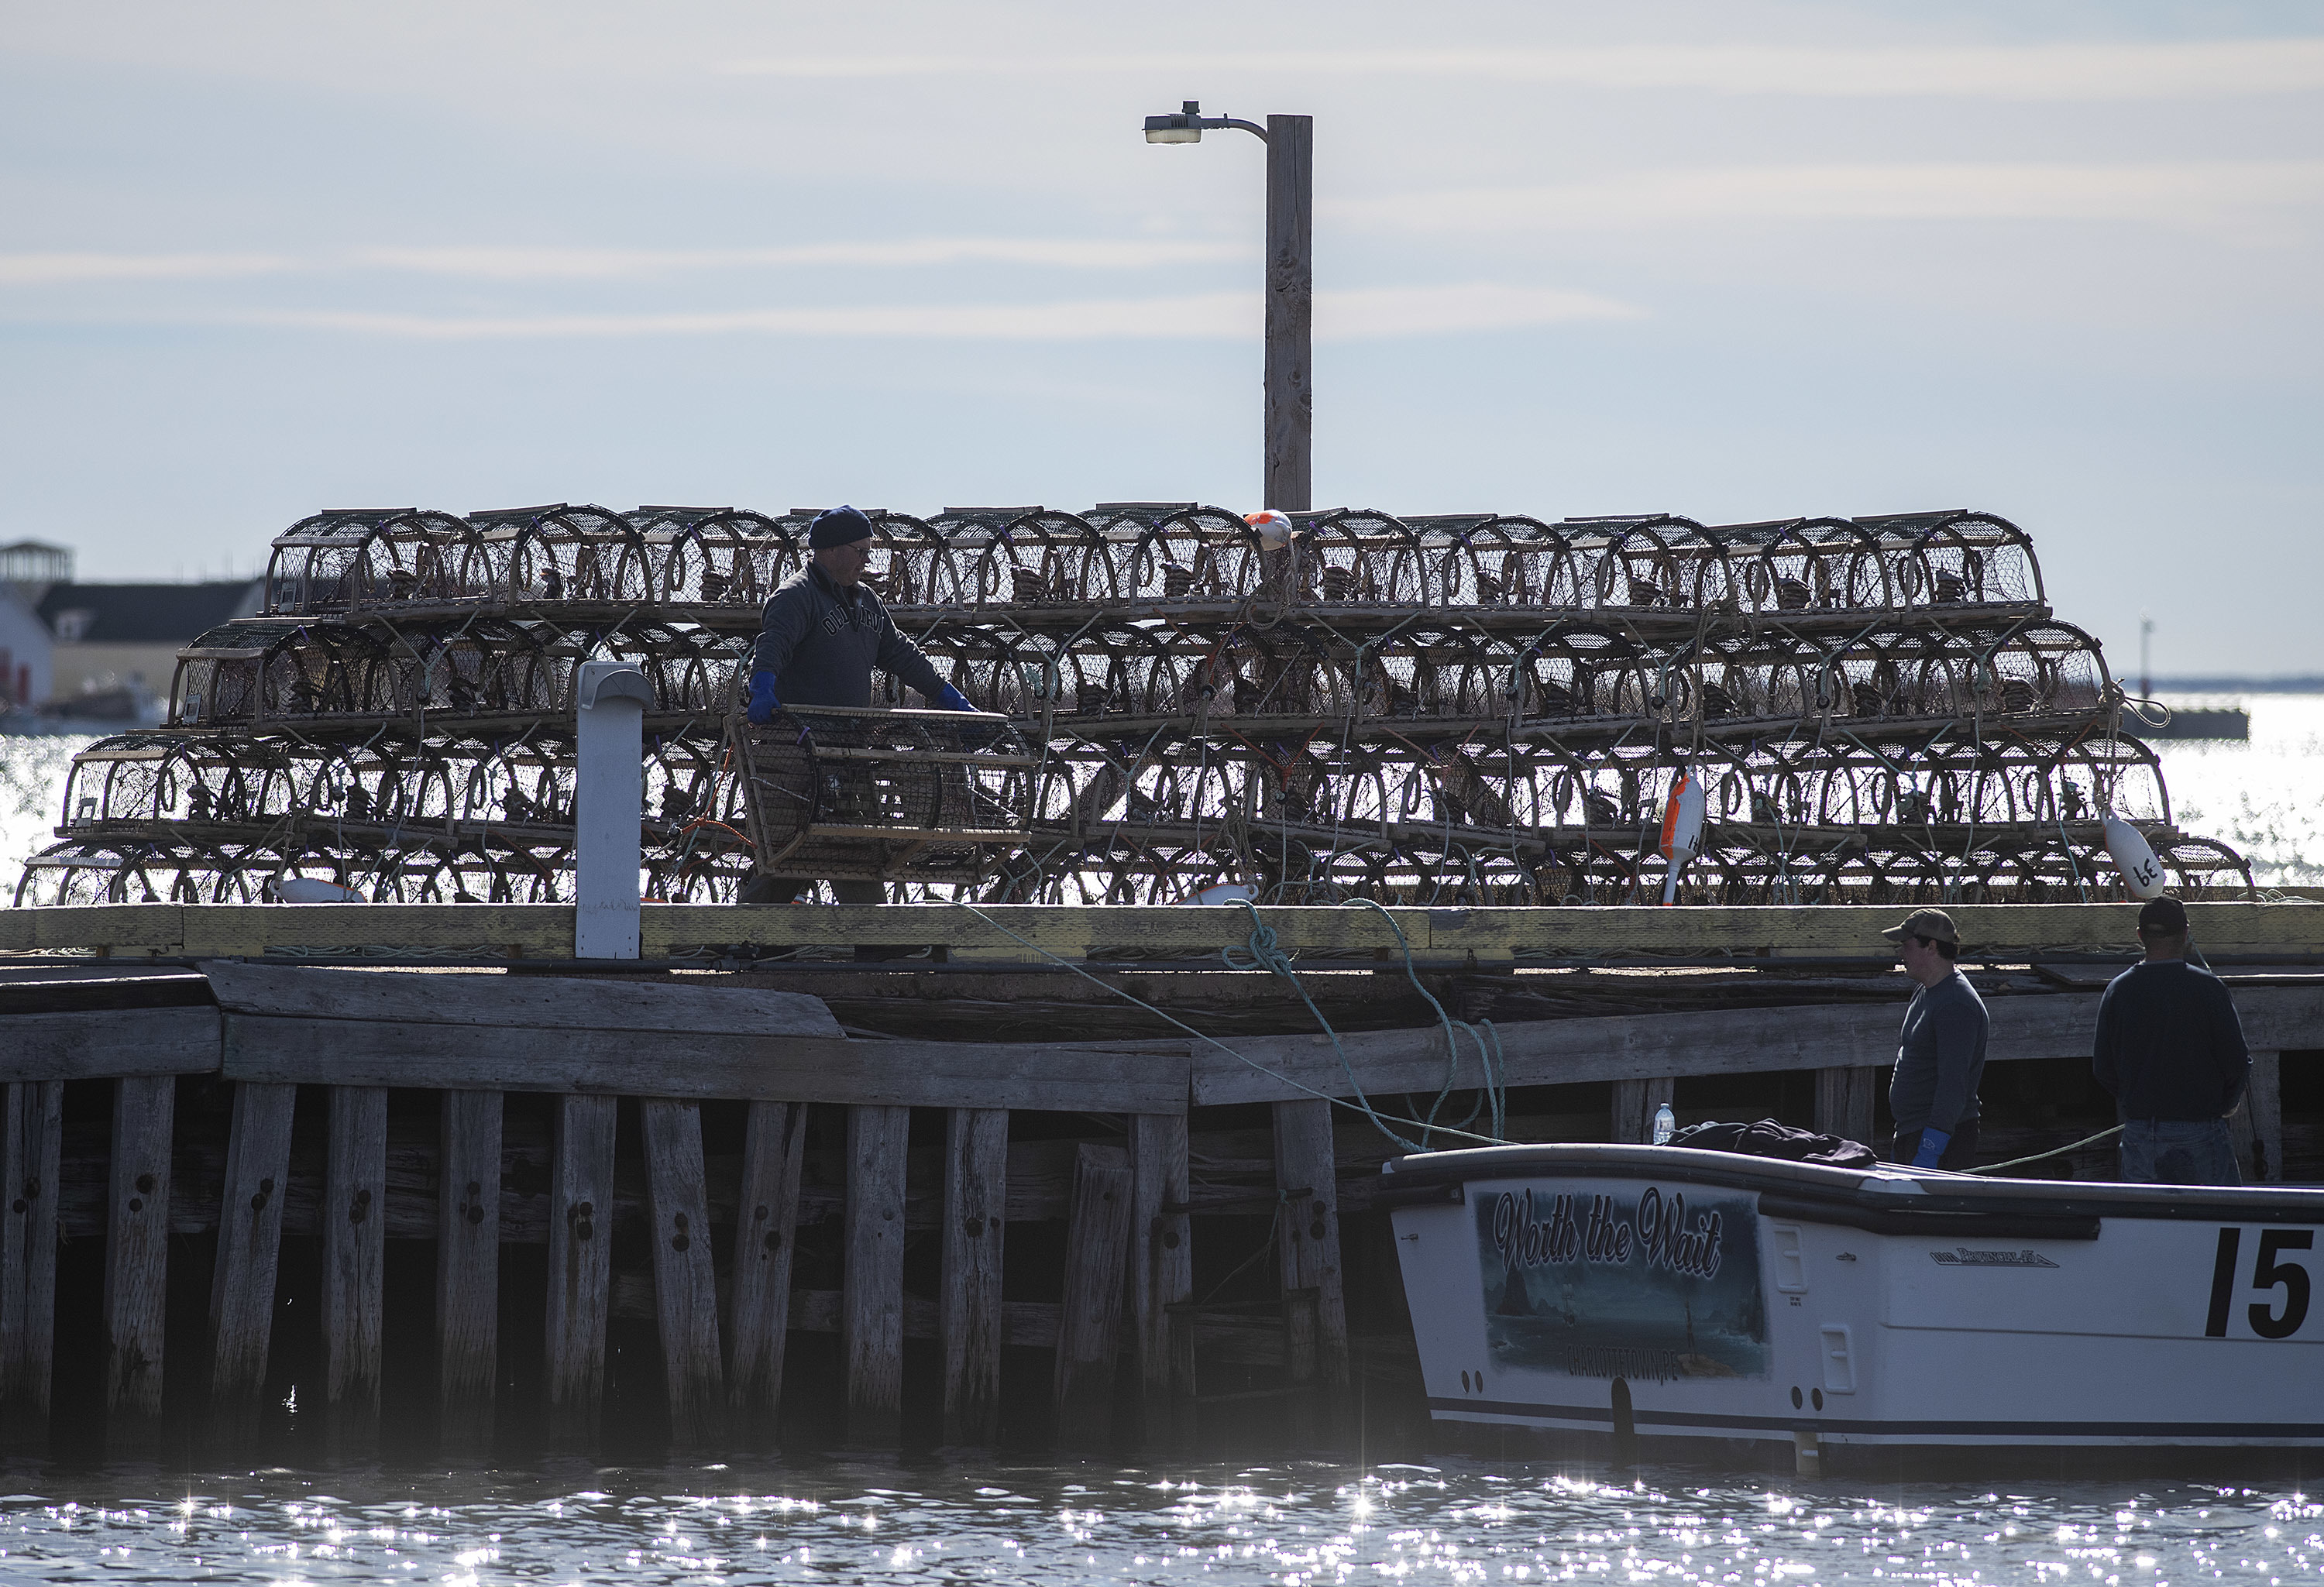 Traps are silhouetted on the wharf as fishermen bait them and load them onto a boat. (Brian McInnis)